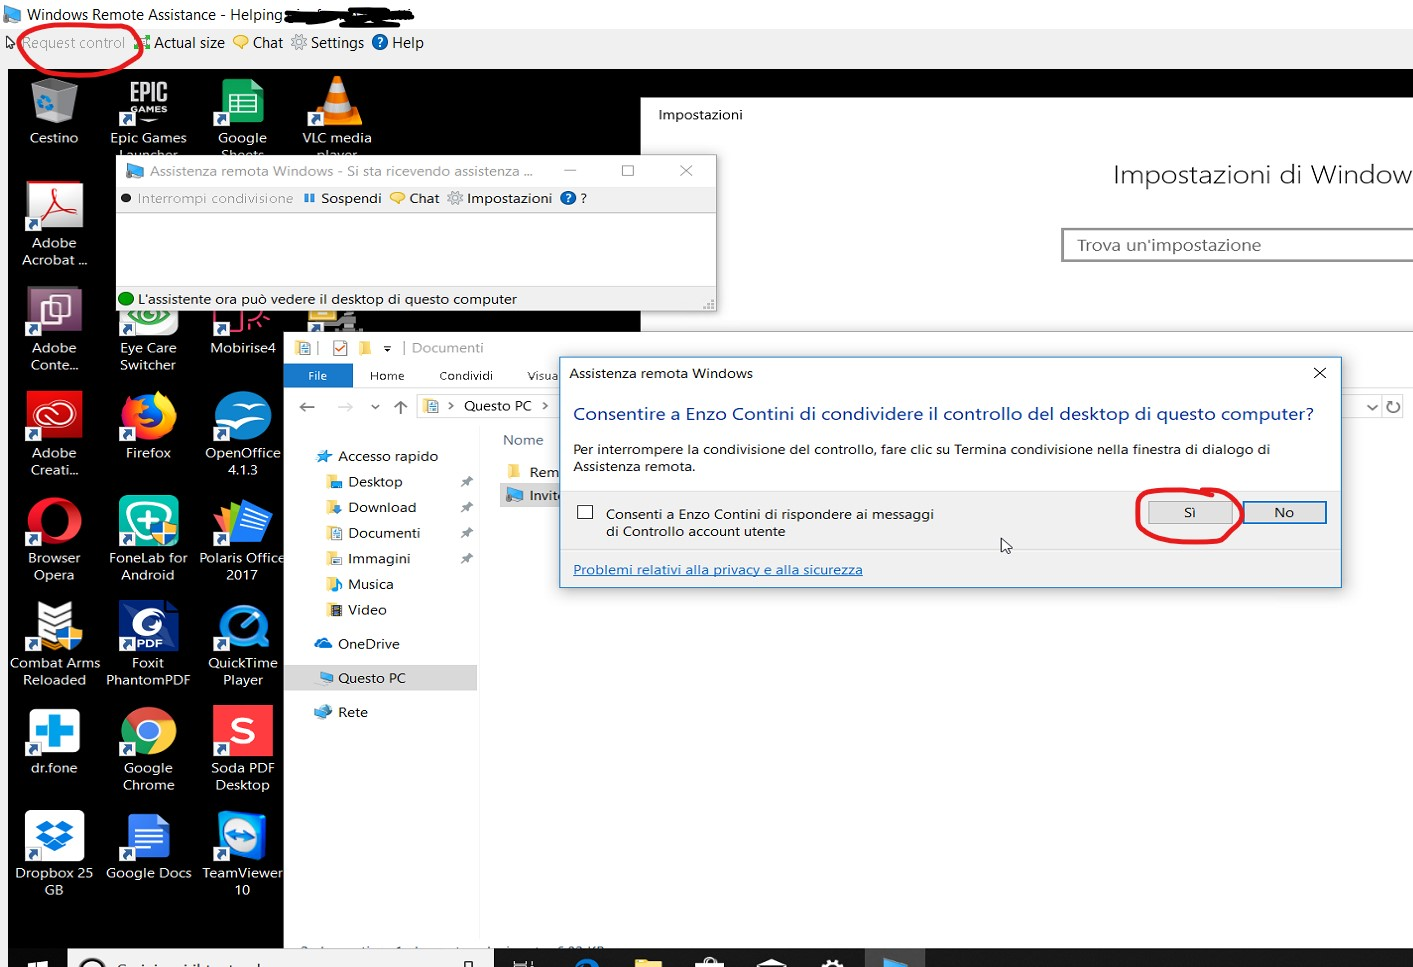 Remote assistance in Windows 10 | Enzo Contini Blog